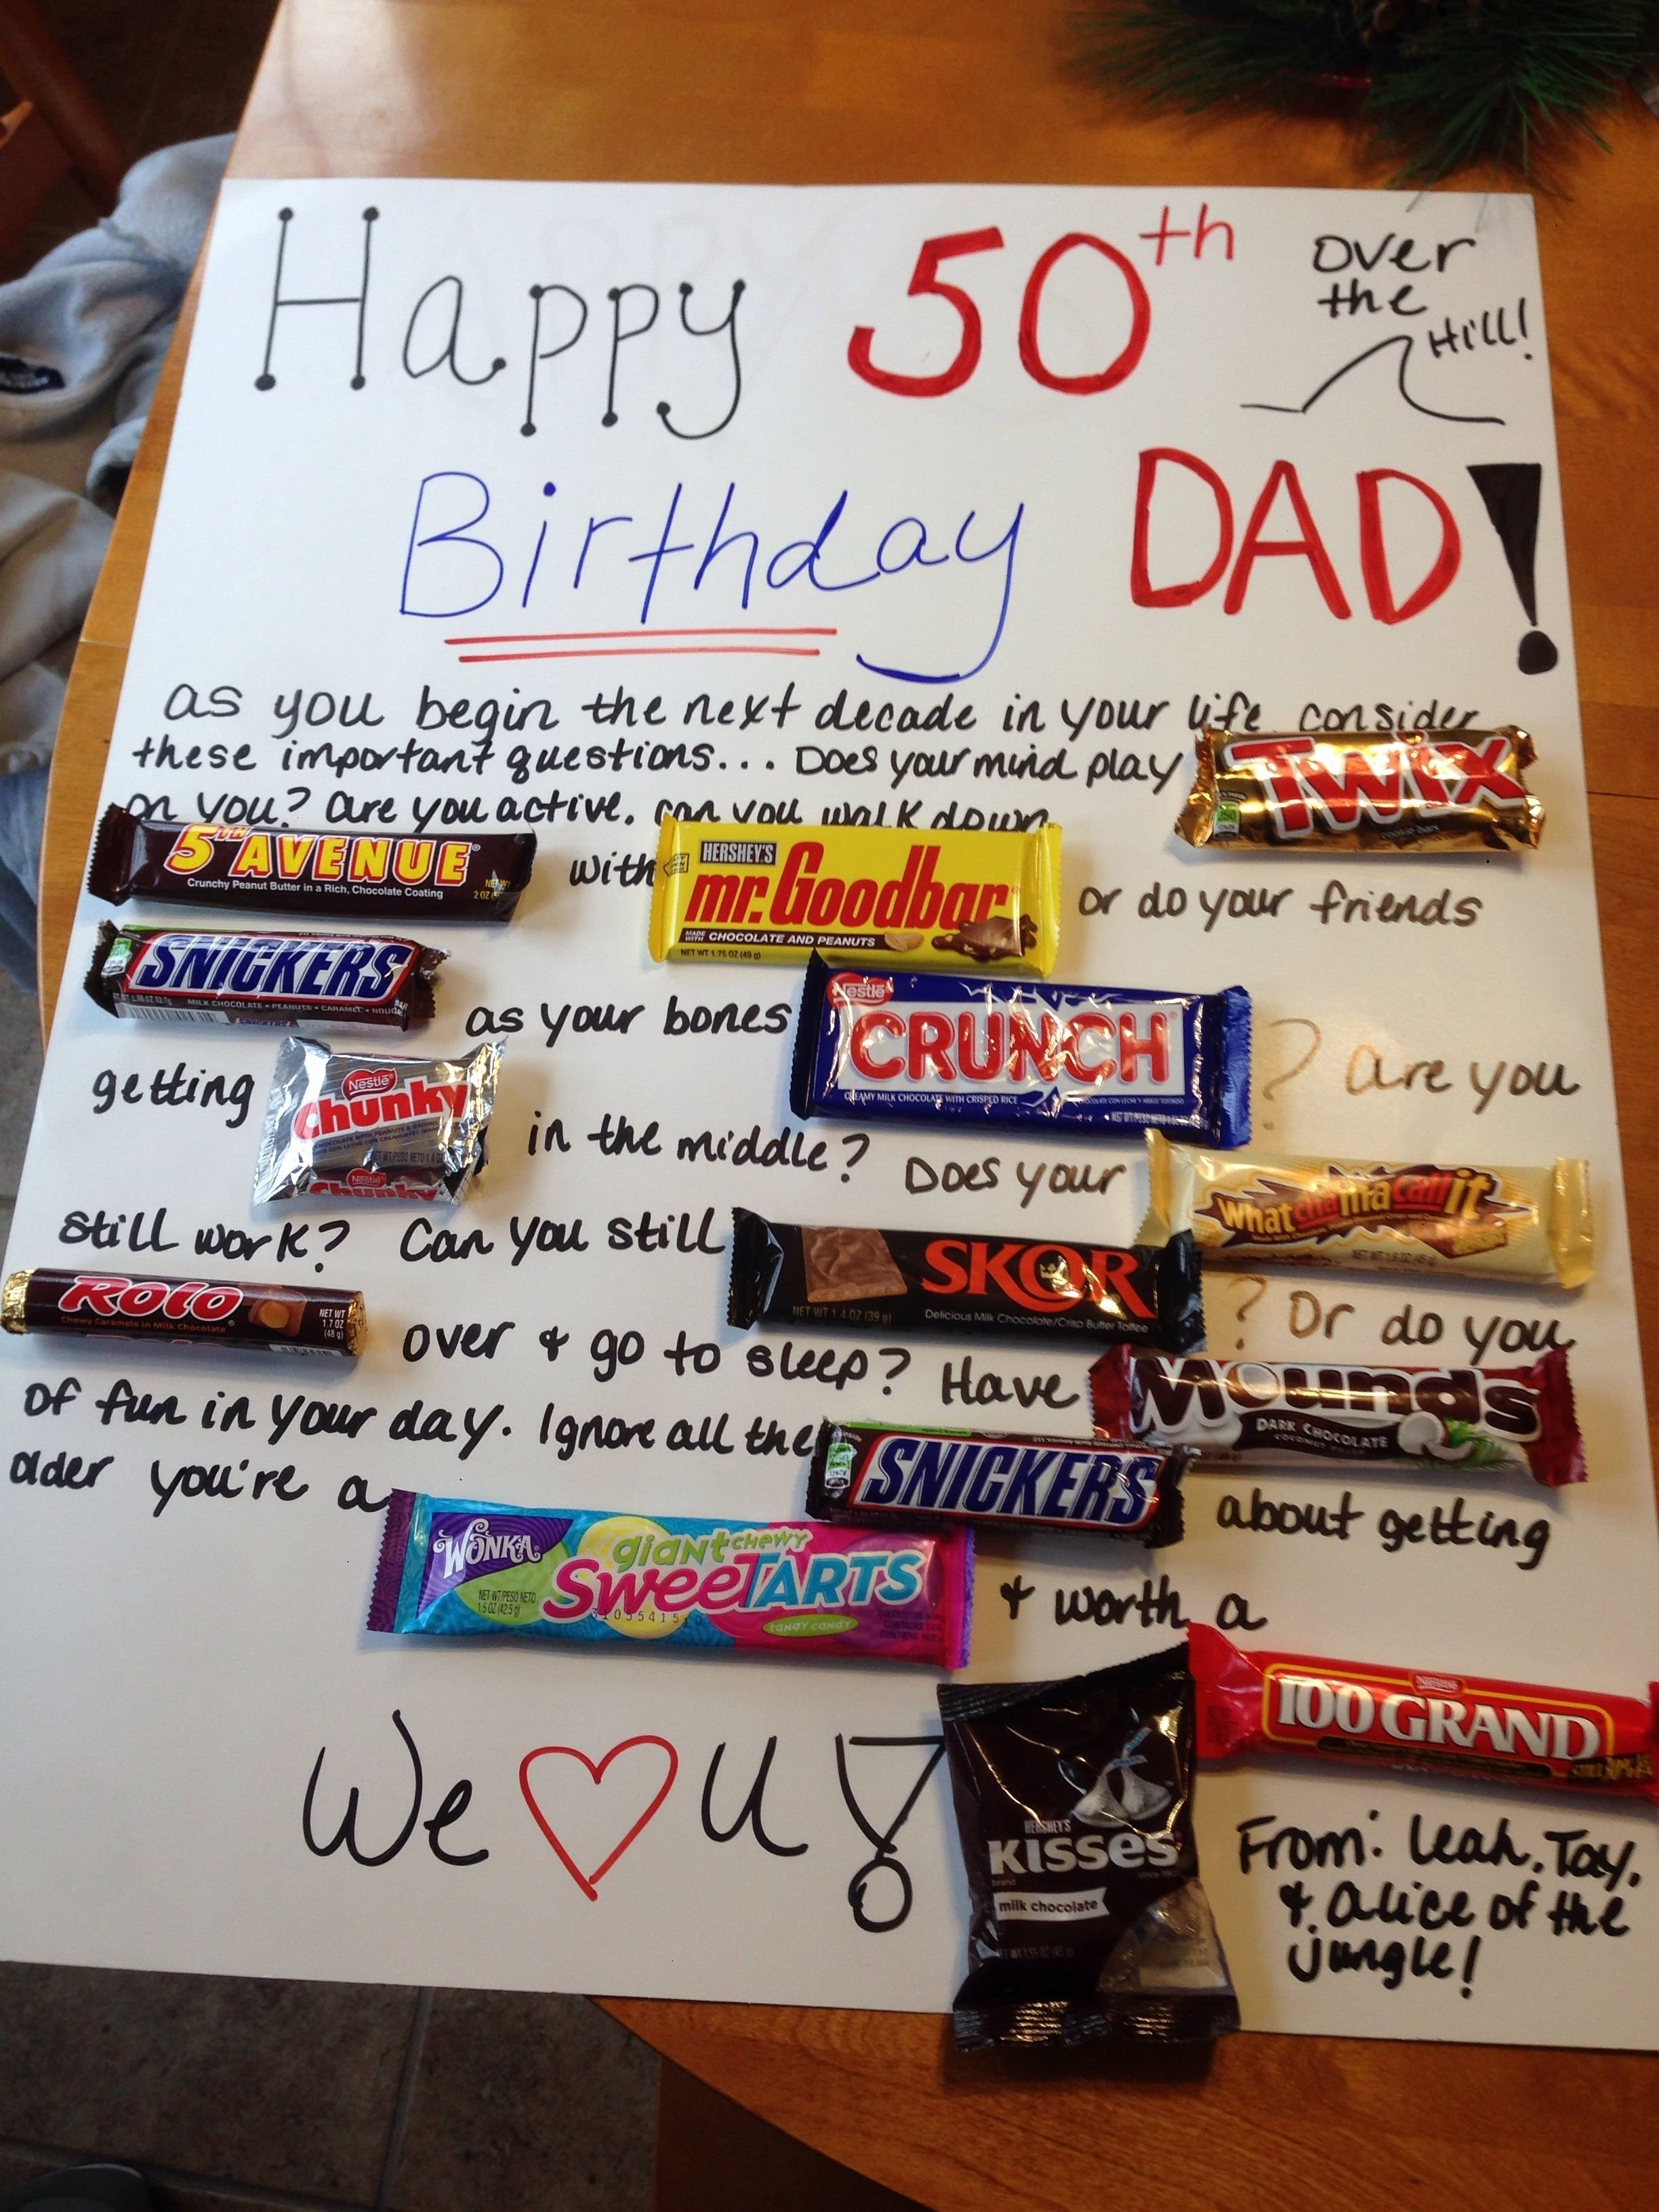 10 Lovely Ideas For A Birthday Gift 40th birthday ideas 50th birthday gift ideas for uncle https www 25